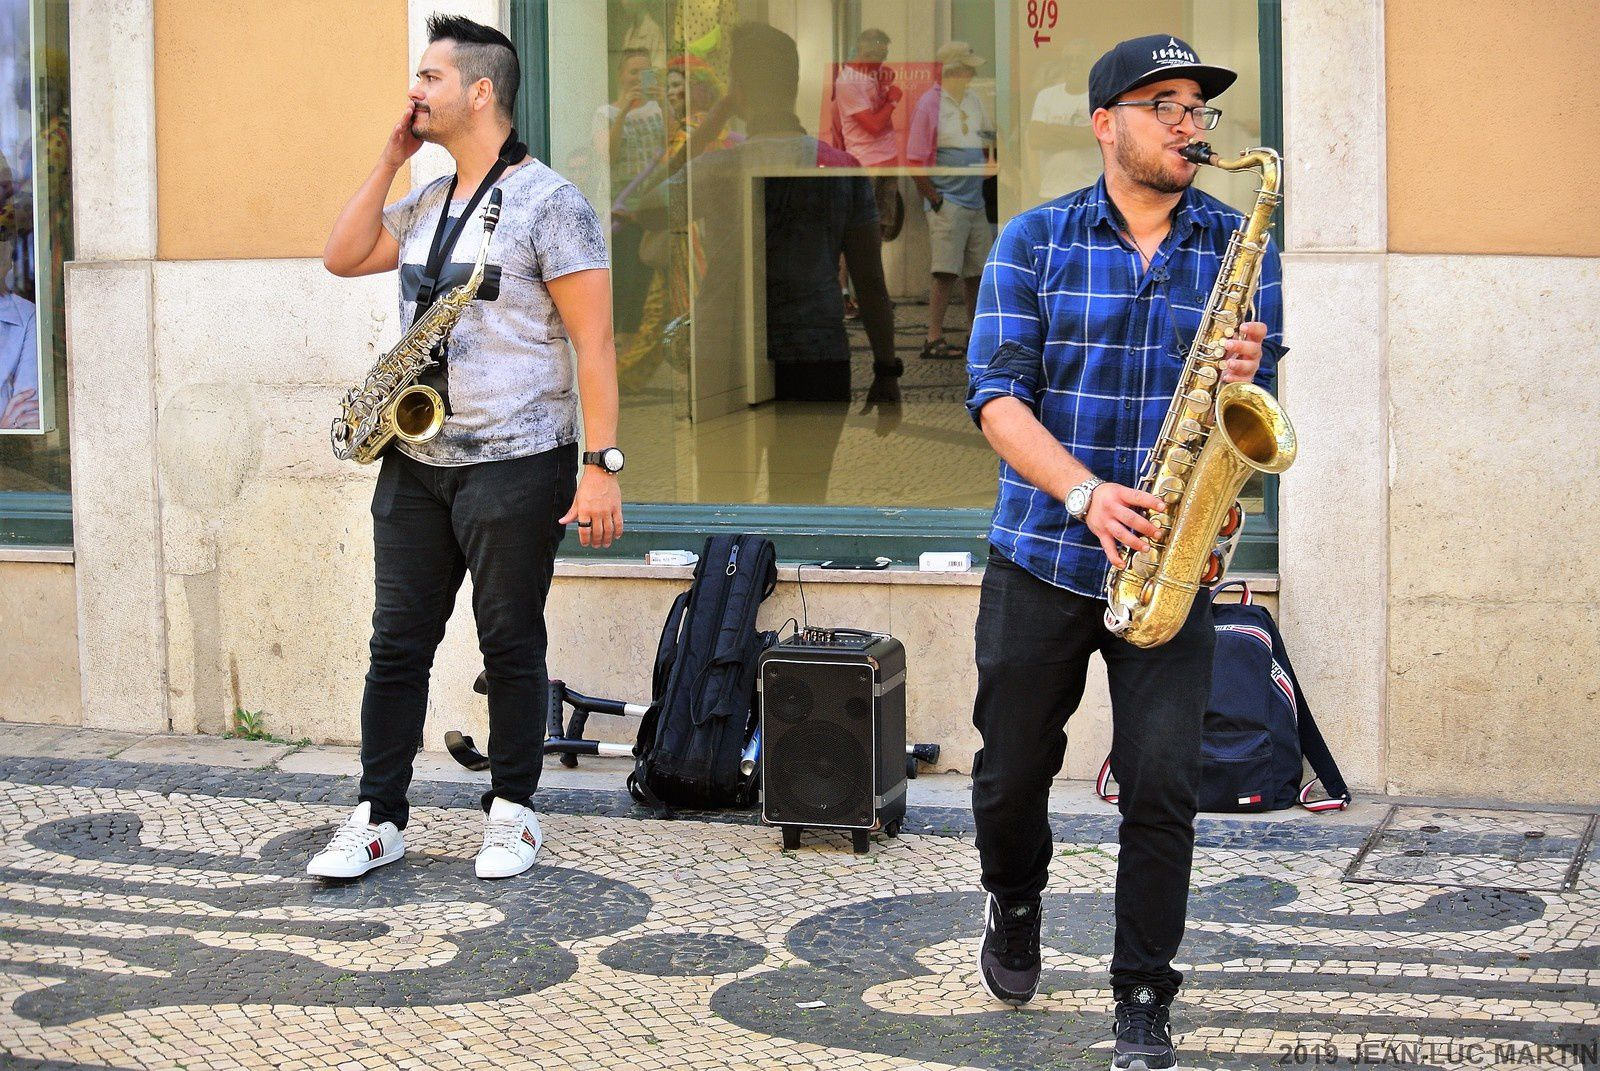 SAXOPHONISTES JAZZ IN THE STREET OF LISBONNE